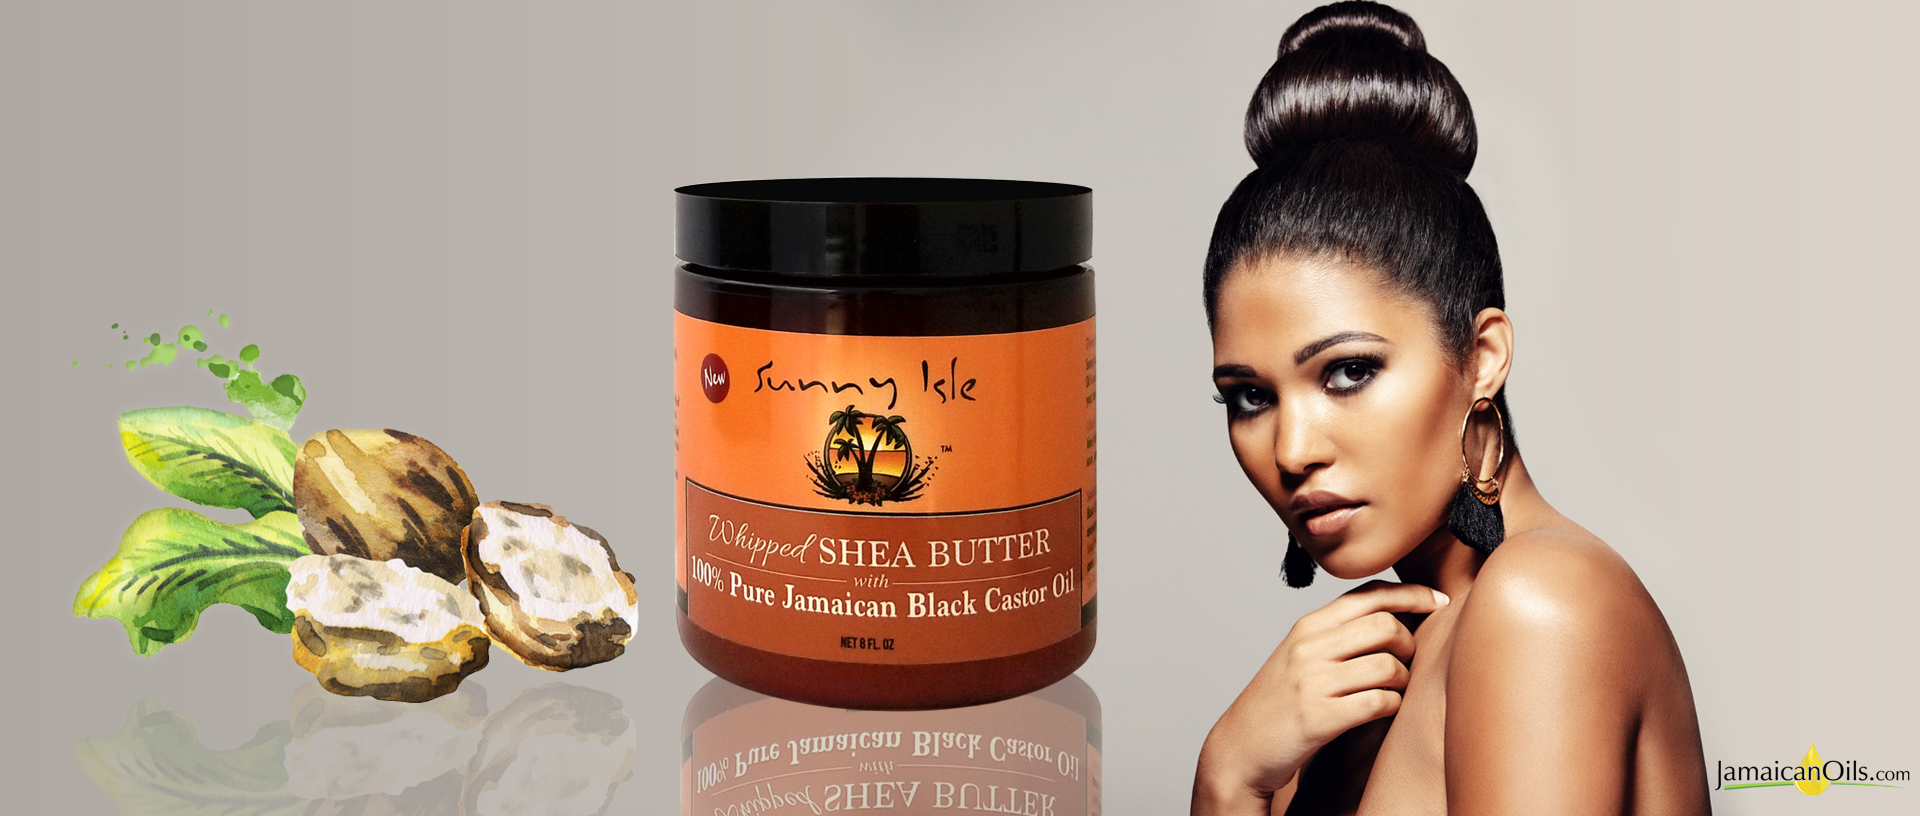 Sunny Isle Whipped Shea Butter with JBCO